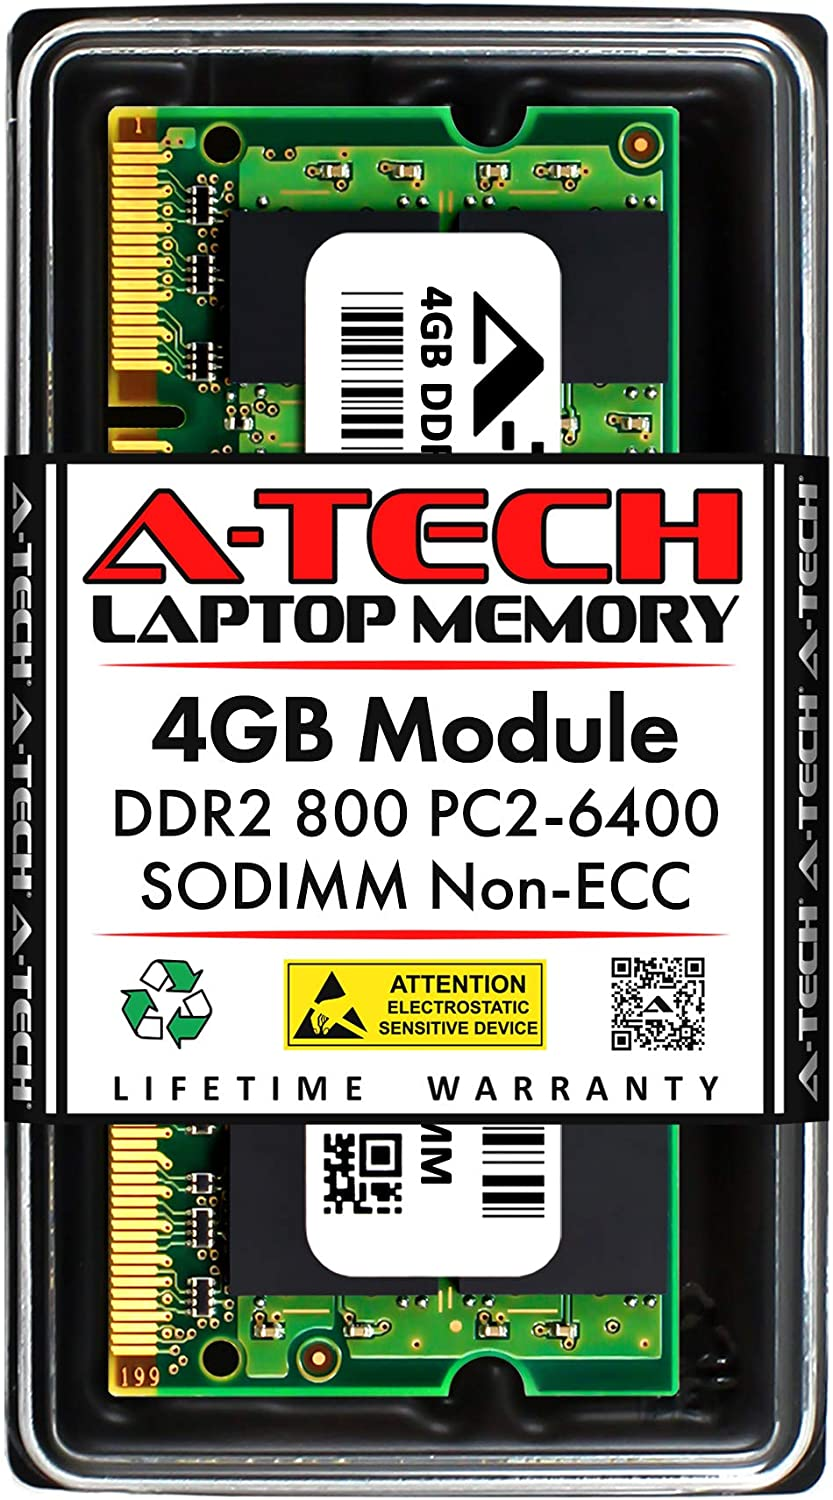 RAM Memory Upgrade Kit for The Sony VAIO VGN CS180 VGNCS180J//W 8GB 2x4GB DDR2-800 PC2-6400